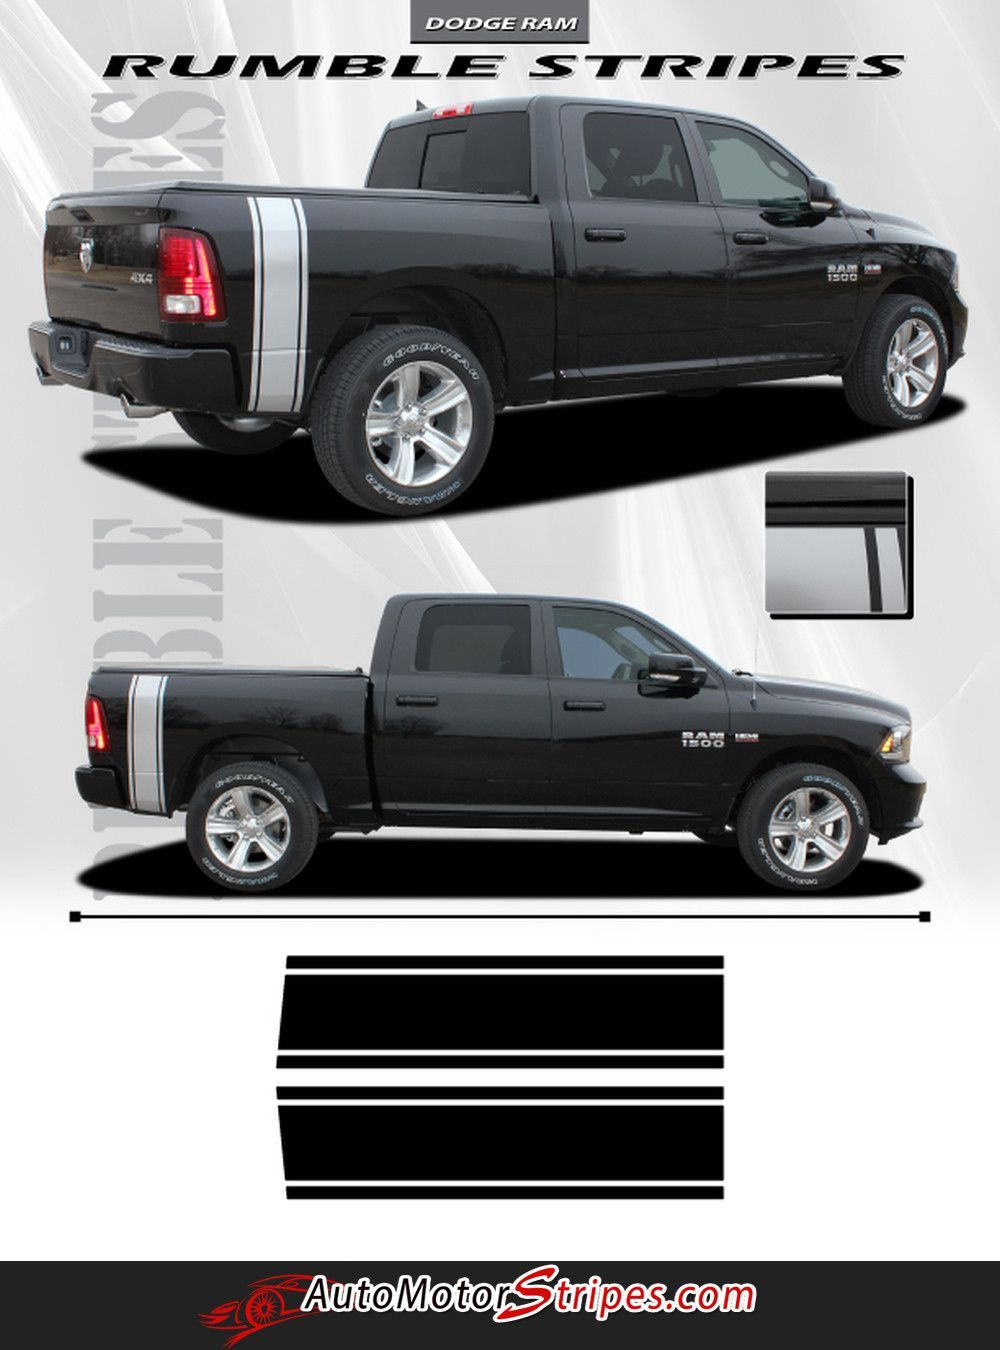 hight resolution of vehicle specific style dodge ram truck rumble bee bed striping vinyl graphic stripe decals year fitment 2009 2010 2011 2012 2013 2014 2015 2016 contents